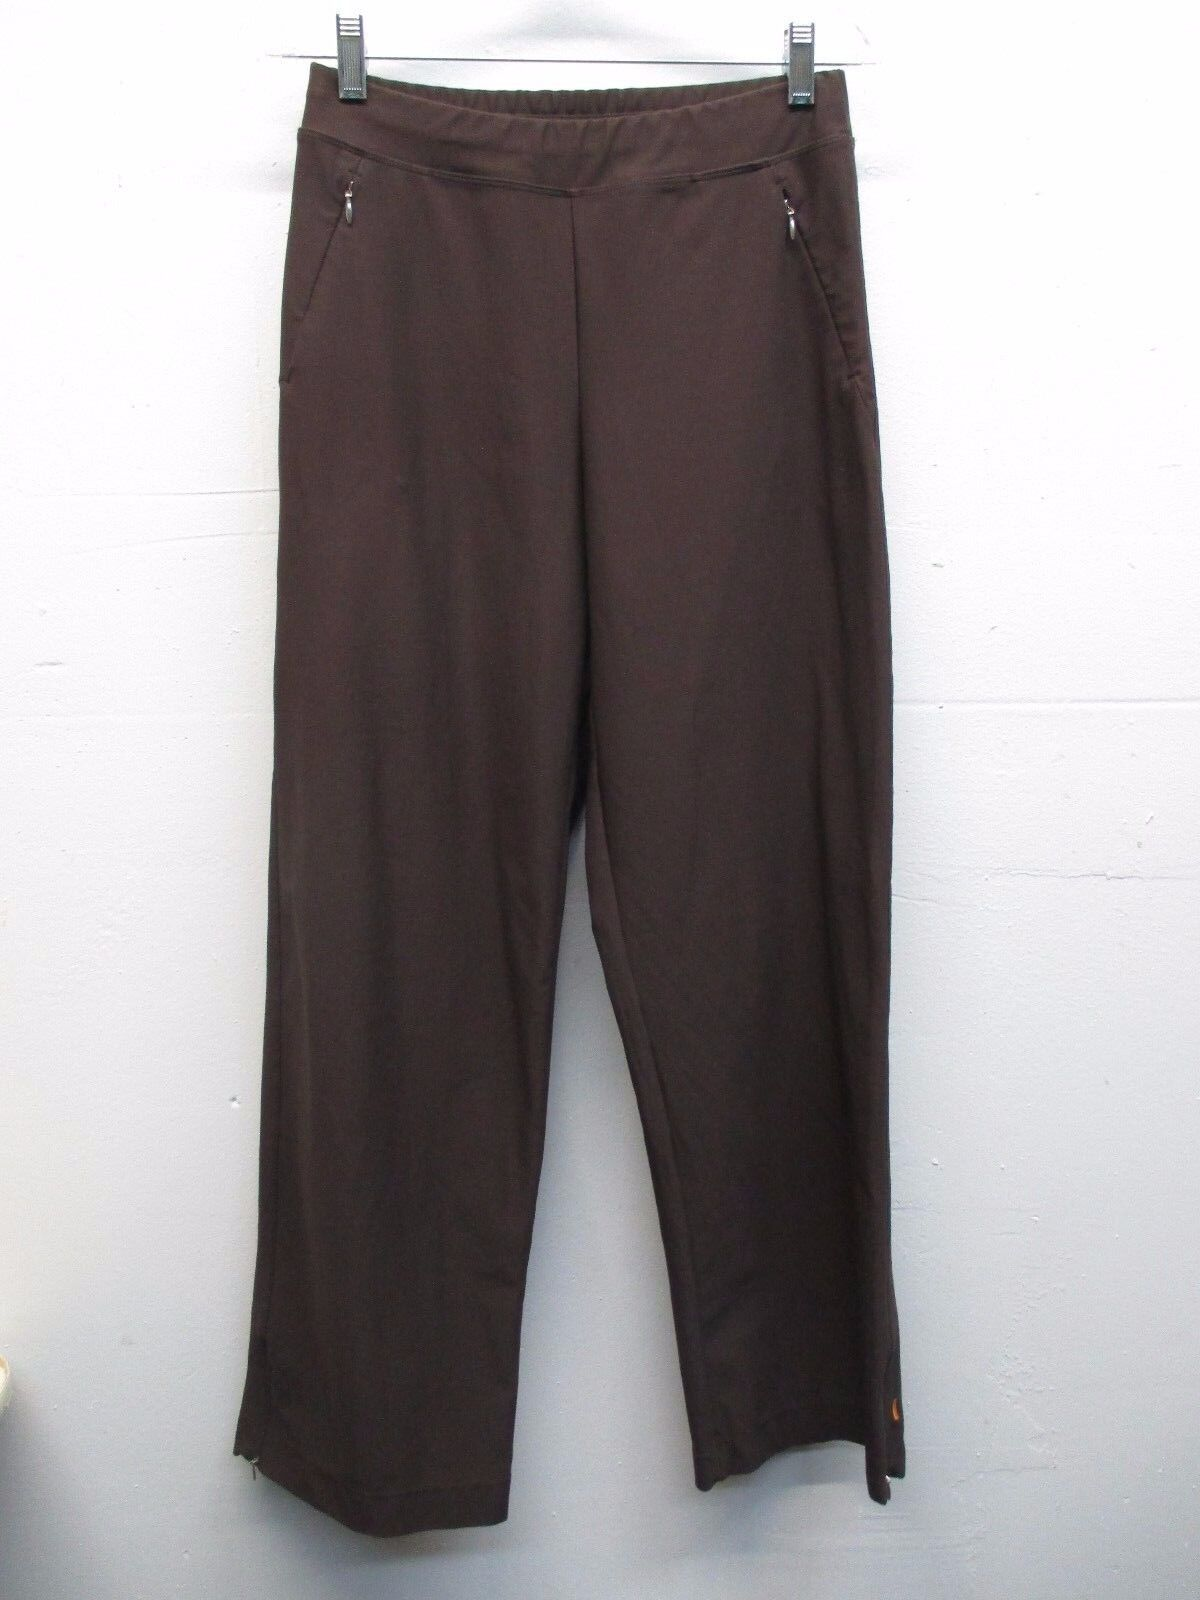 Women's Lucy brown athletic workout yoga pants size S 26 31 EUC